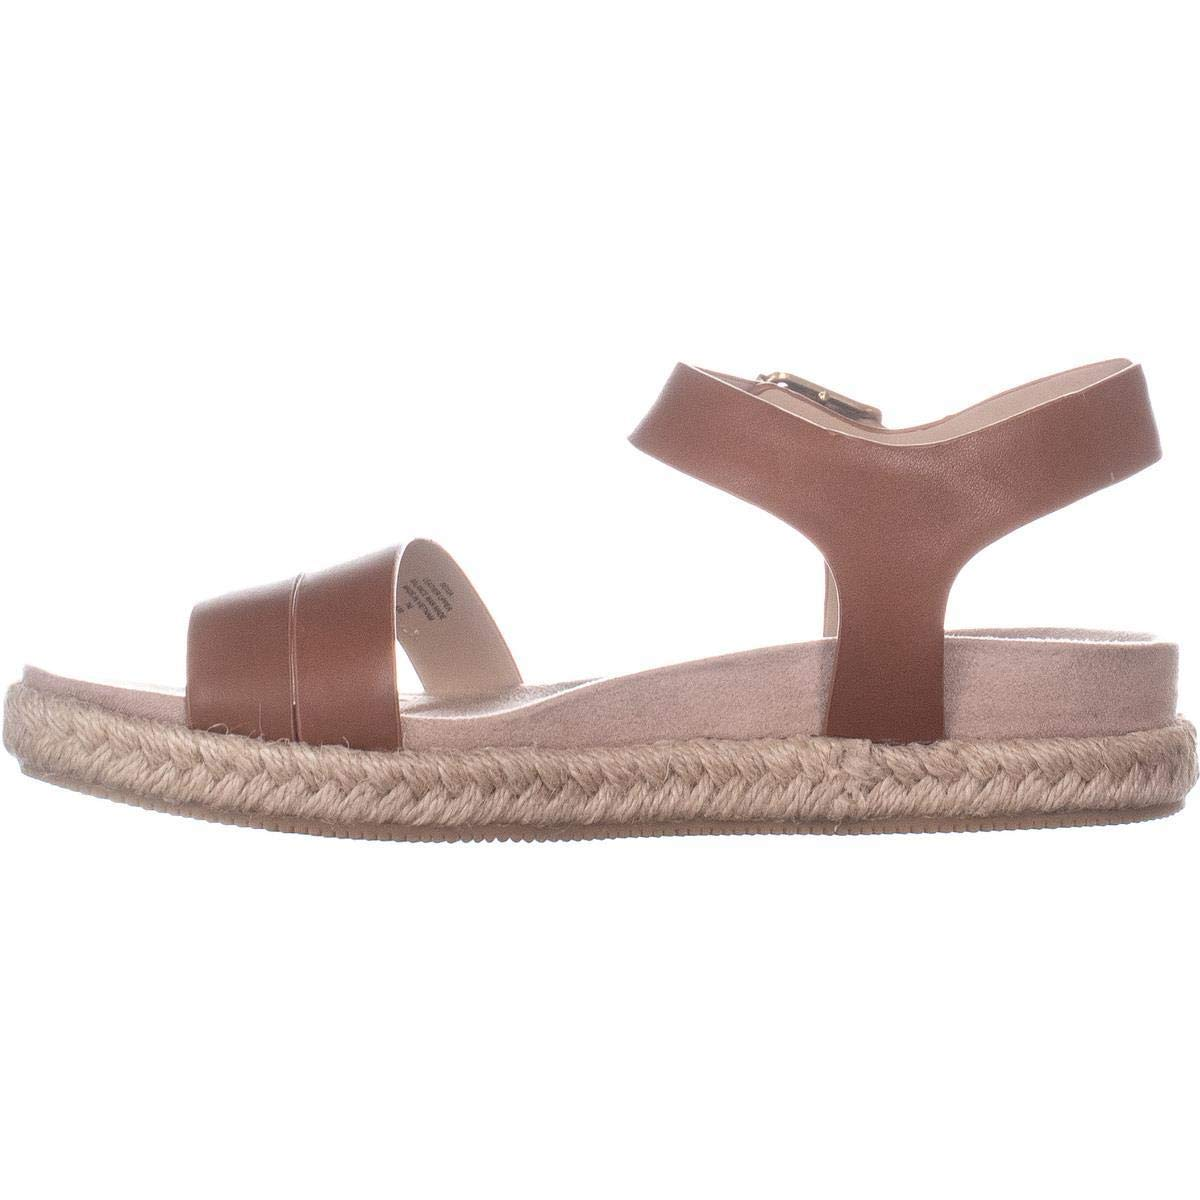 6d026a97292 Easy Spirit Womens Ixia Leather Open Toe Casual Espadrille Sandals ...